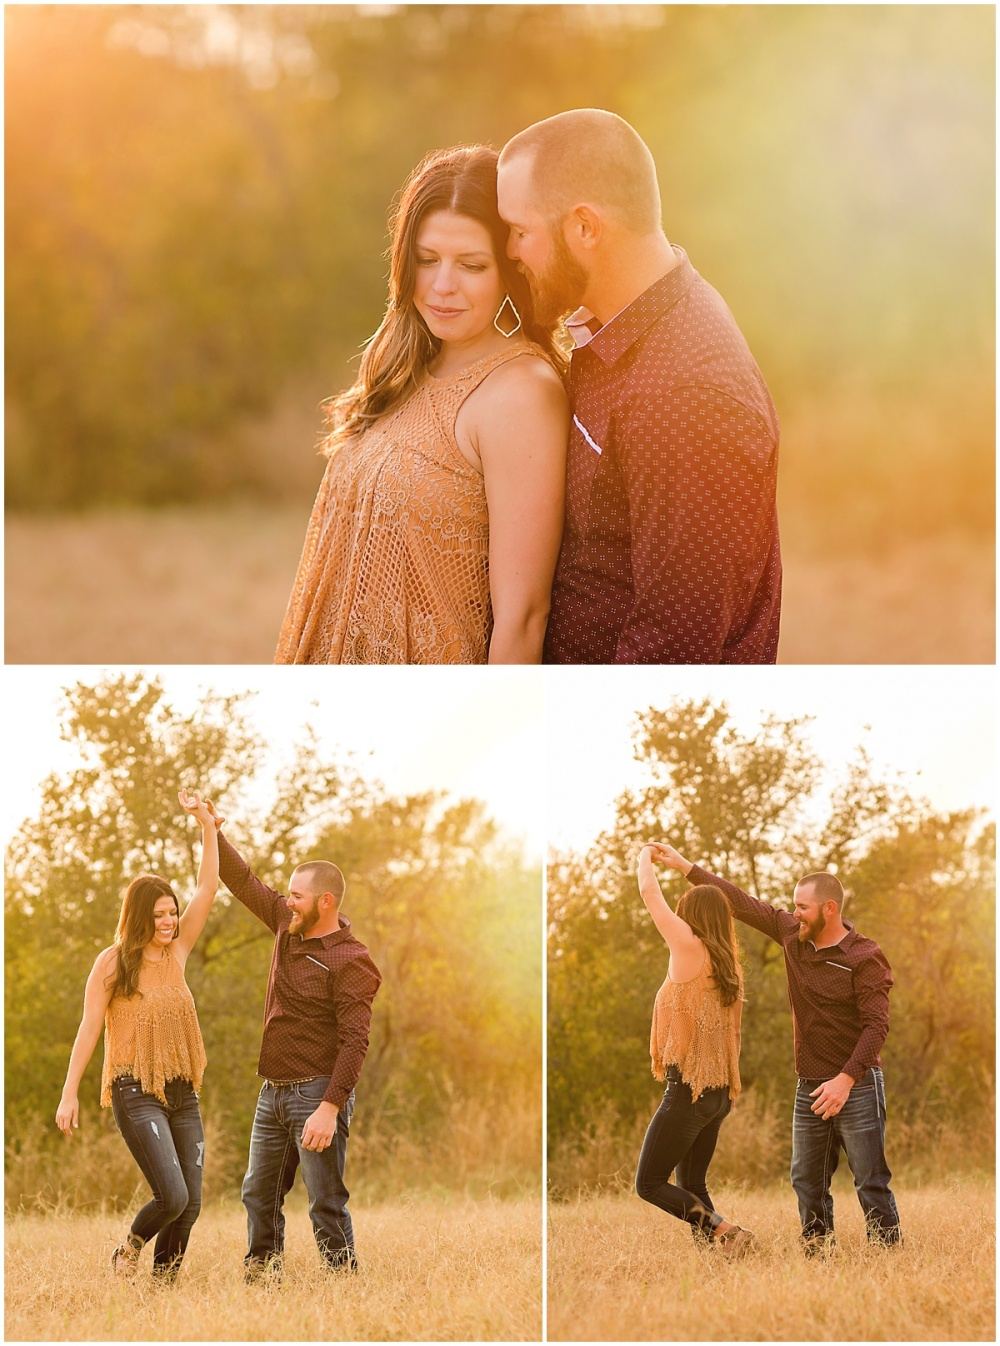 Family-Children-Maternity-Portraits-San-Antonio-Hill-Country-Texas-Carly-Barton-Photography_0089.jpg